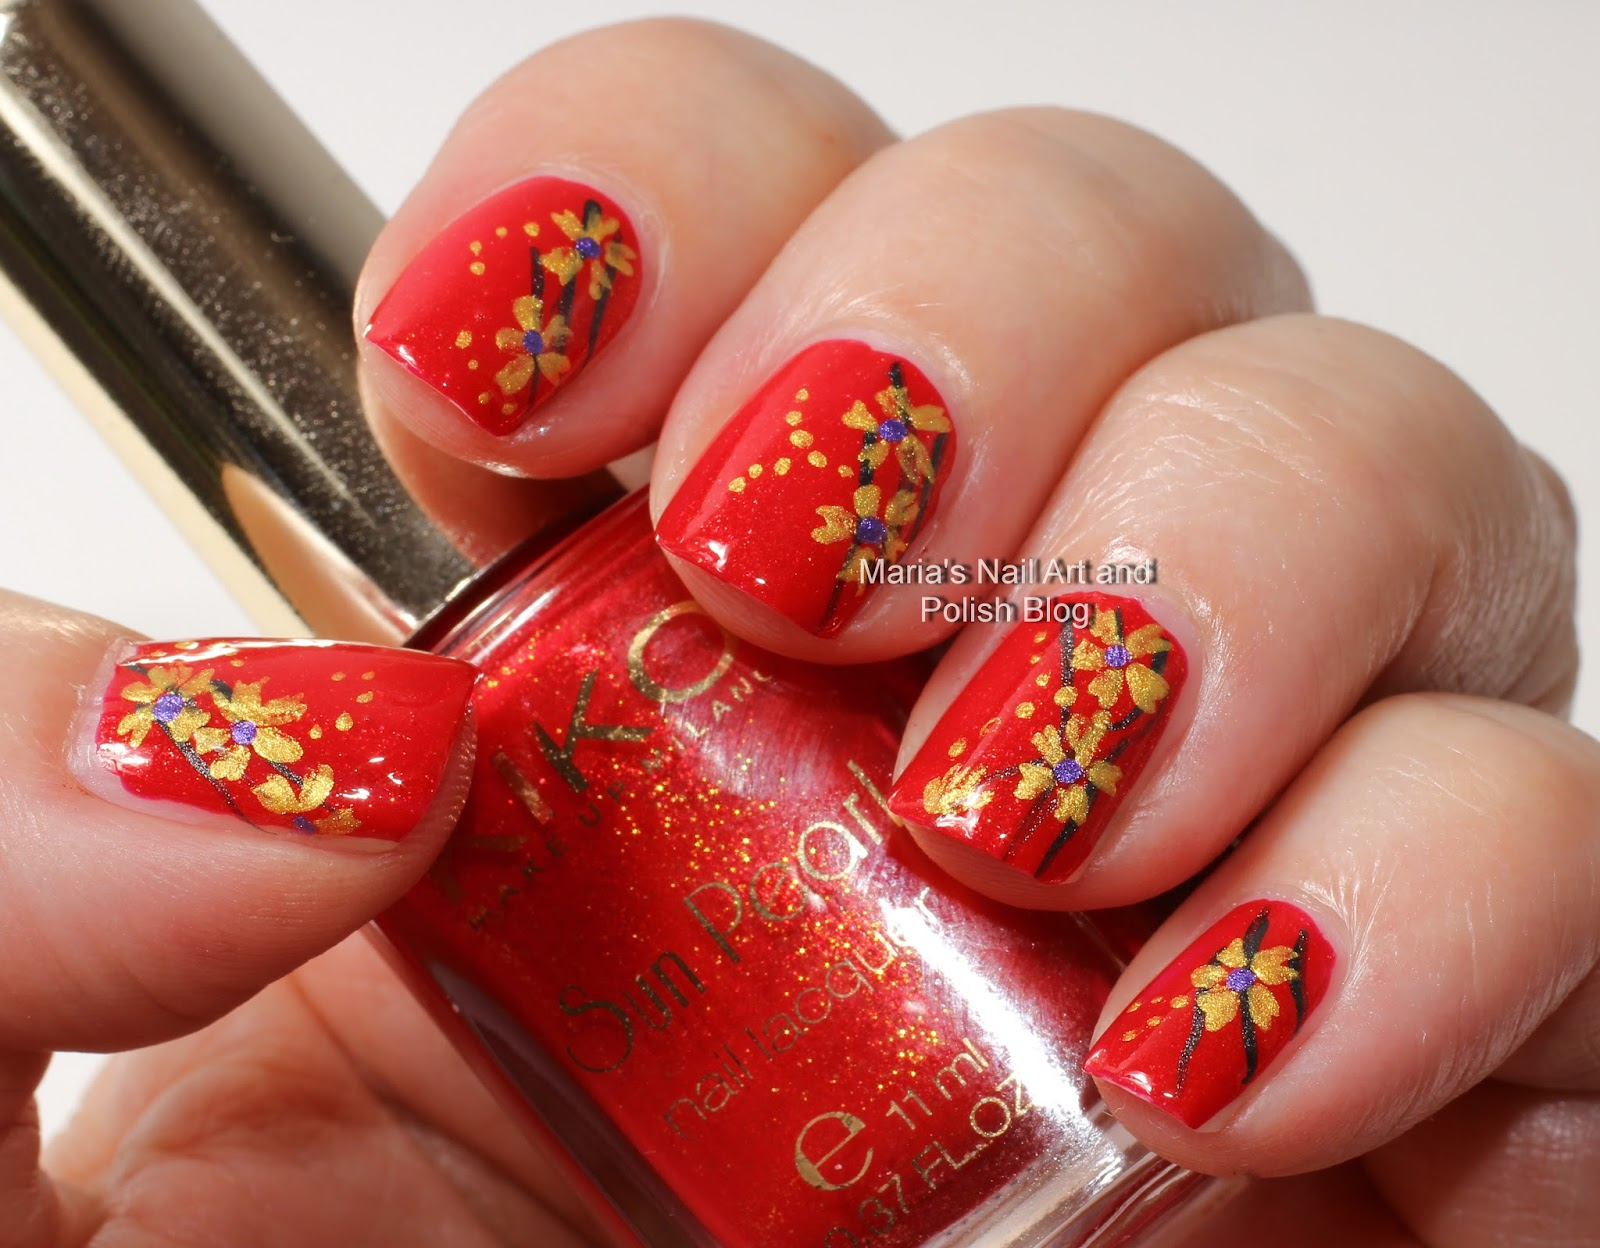 Marias Nail Art And Polish Blog Juli 2013